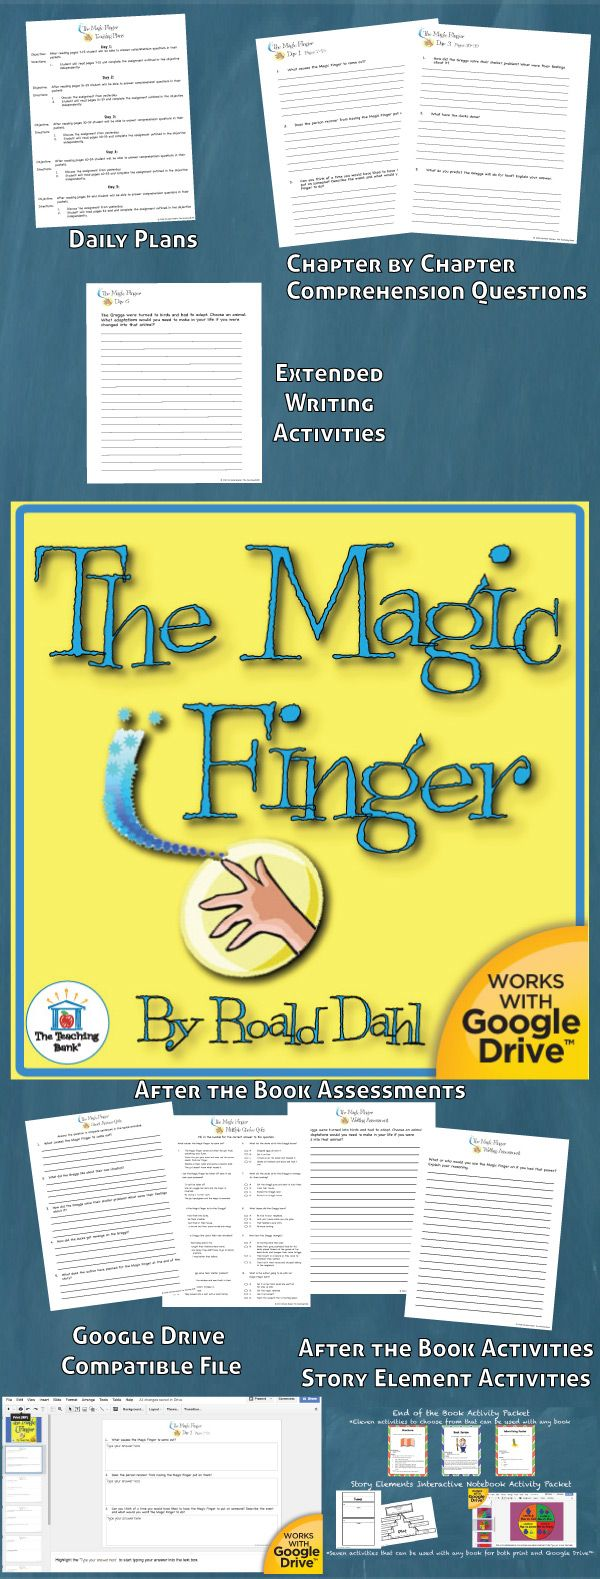 The Magic Finger Novel Study is a Common Core Standard aligned book unit to be used with The Magic Finger by Roald Dahl. This download contains both a printable format as well as a Google Drive™ compatible format.